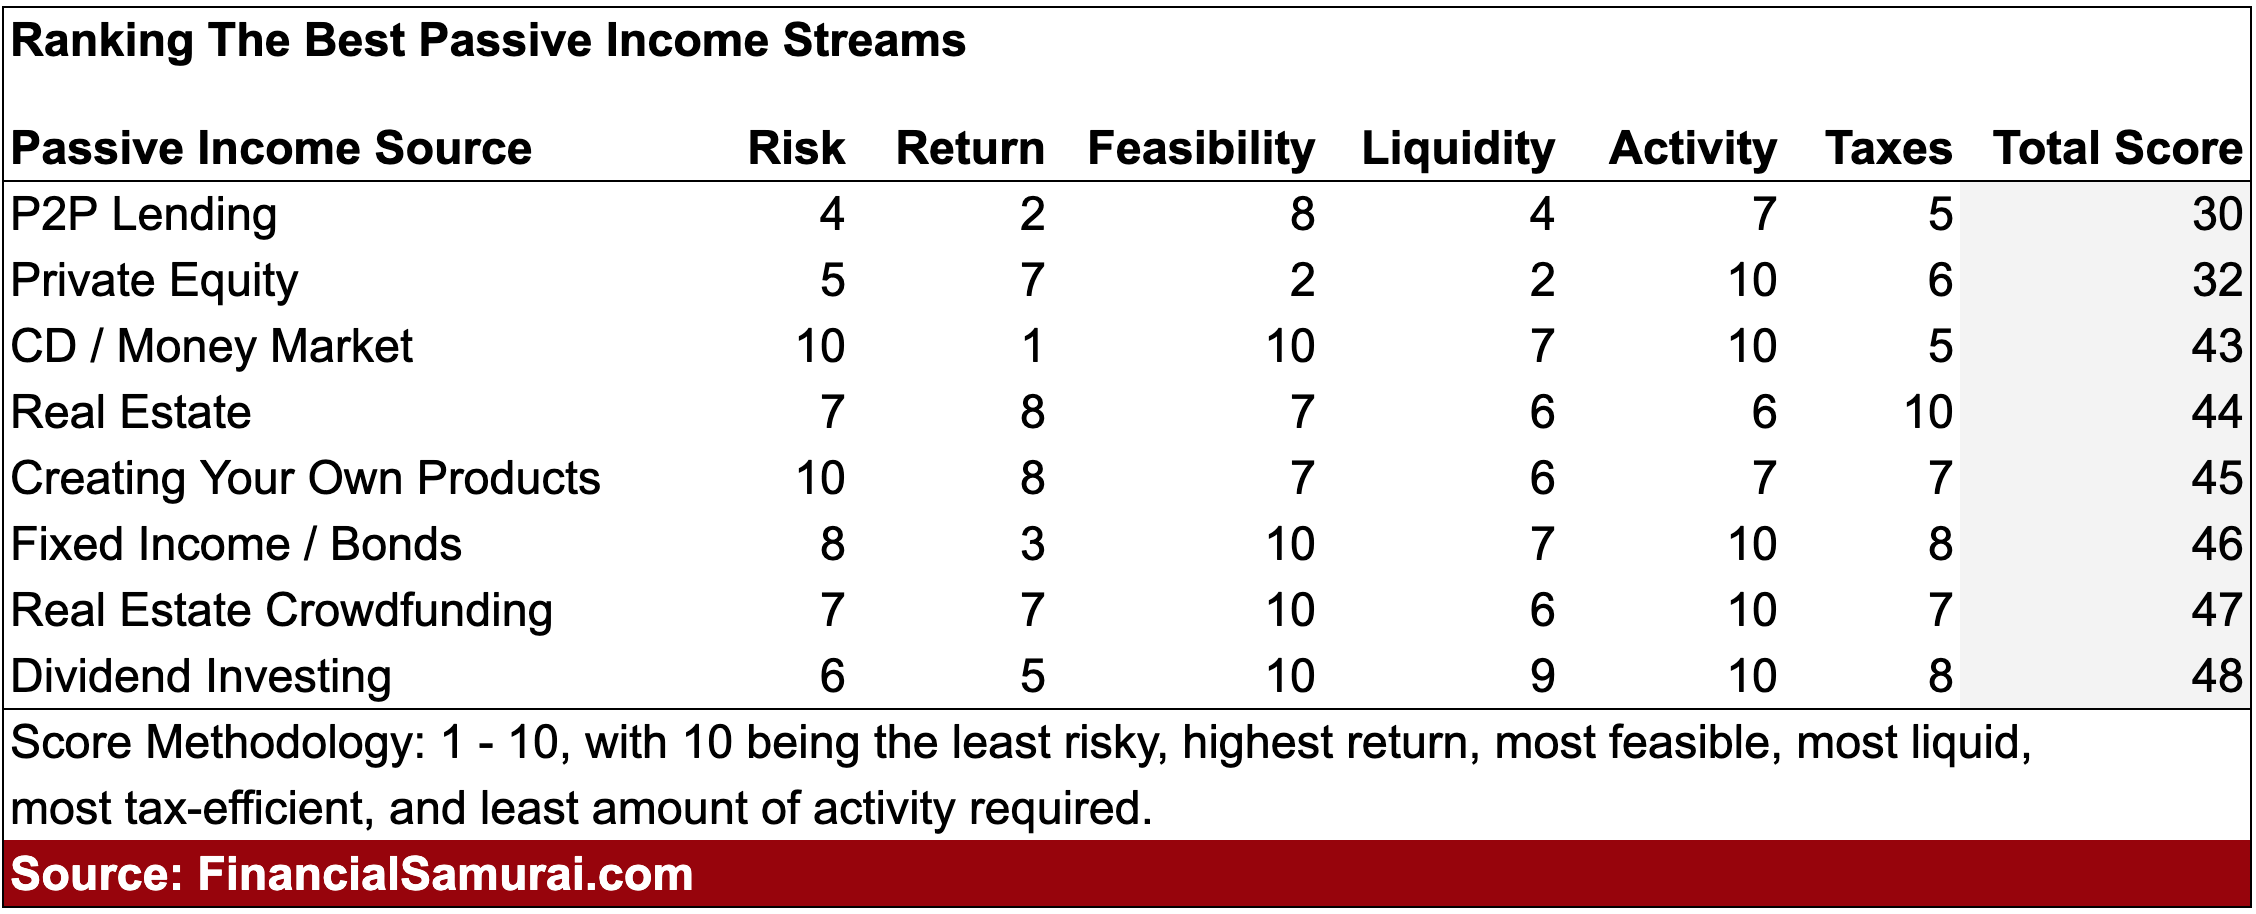 the need for liquidity is overrated due to passive income streams